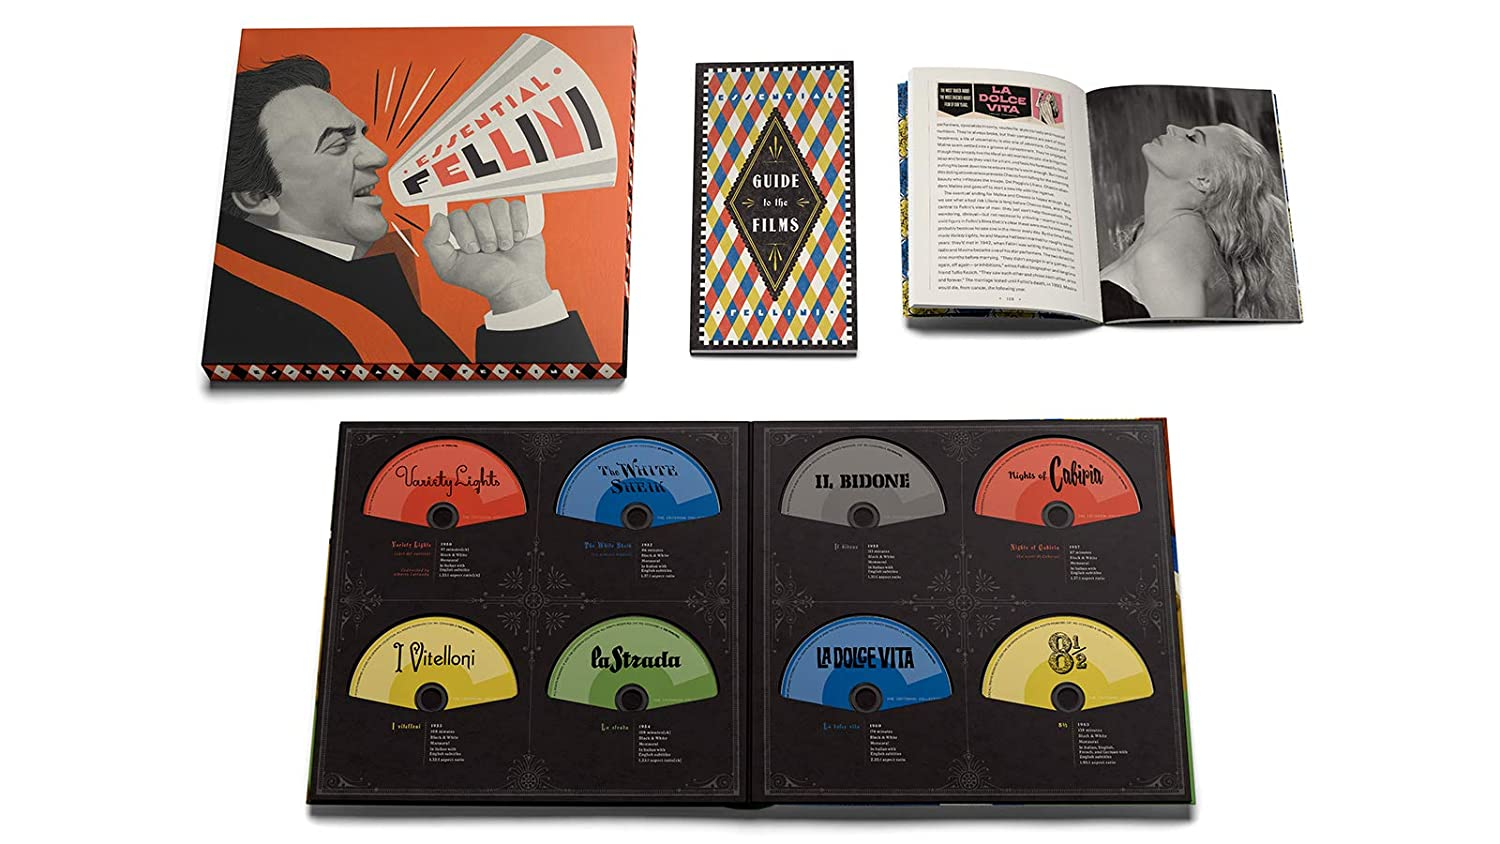 Essential Fellini Blu-ray open